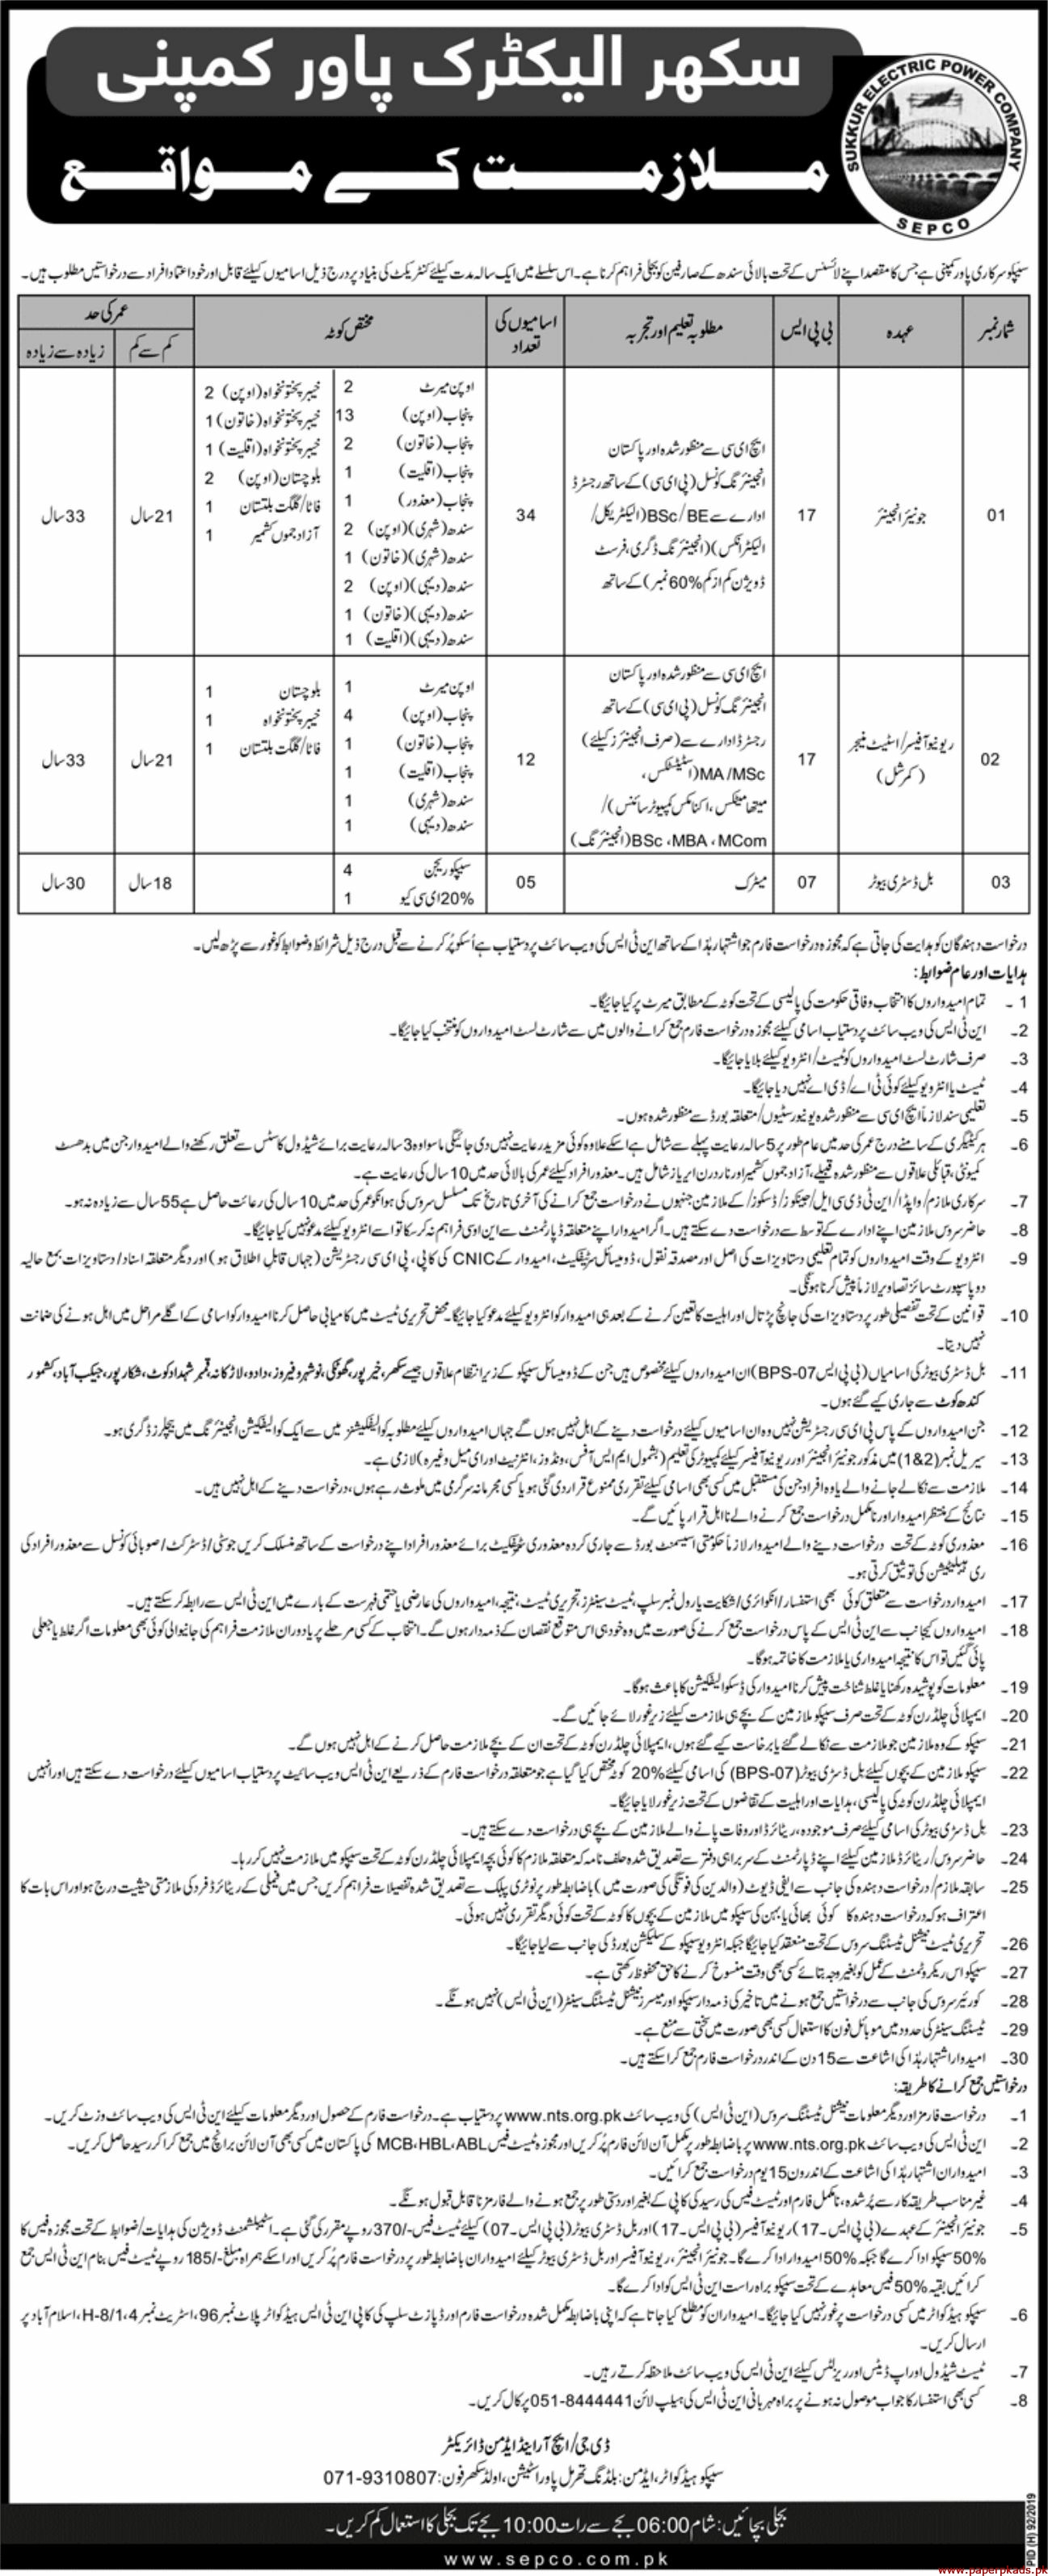 Sukkur Electric Power Company (SEPCO) Latest Jobs 2019